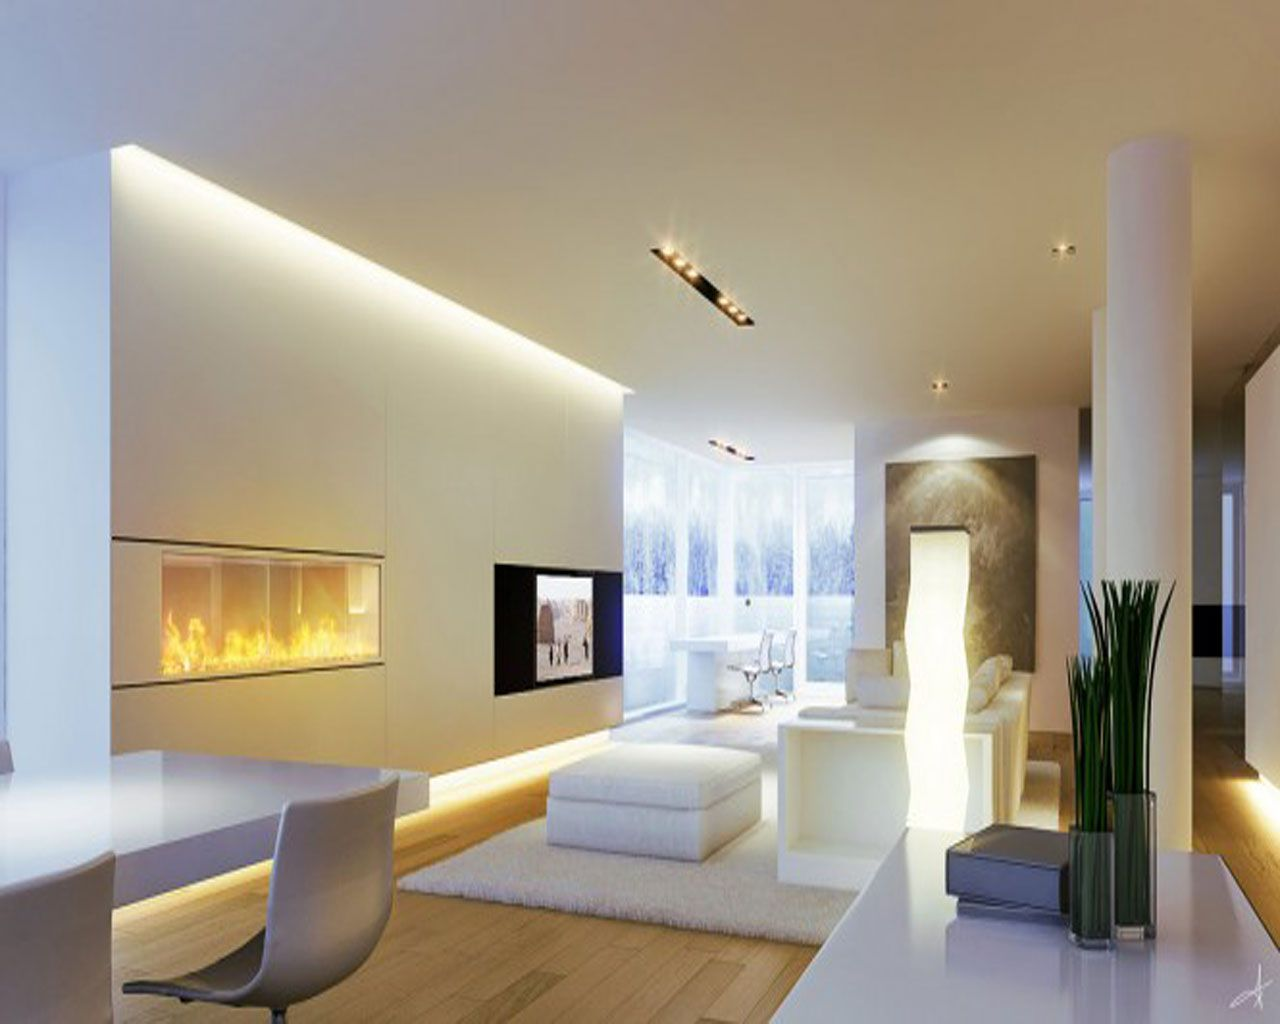 Extraordinary living room lighting design ideas inspiring for Apartment lighting design